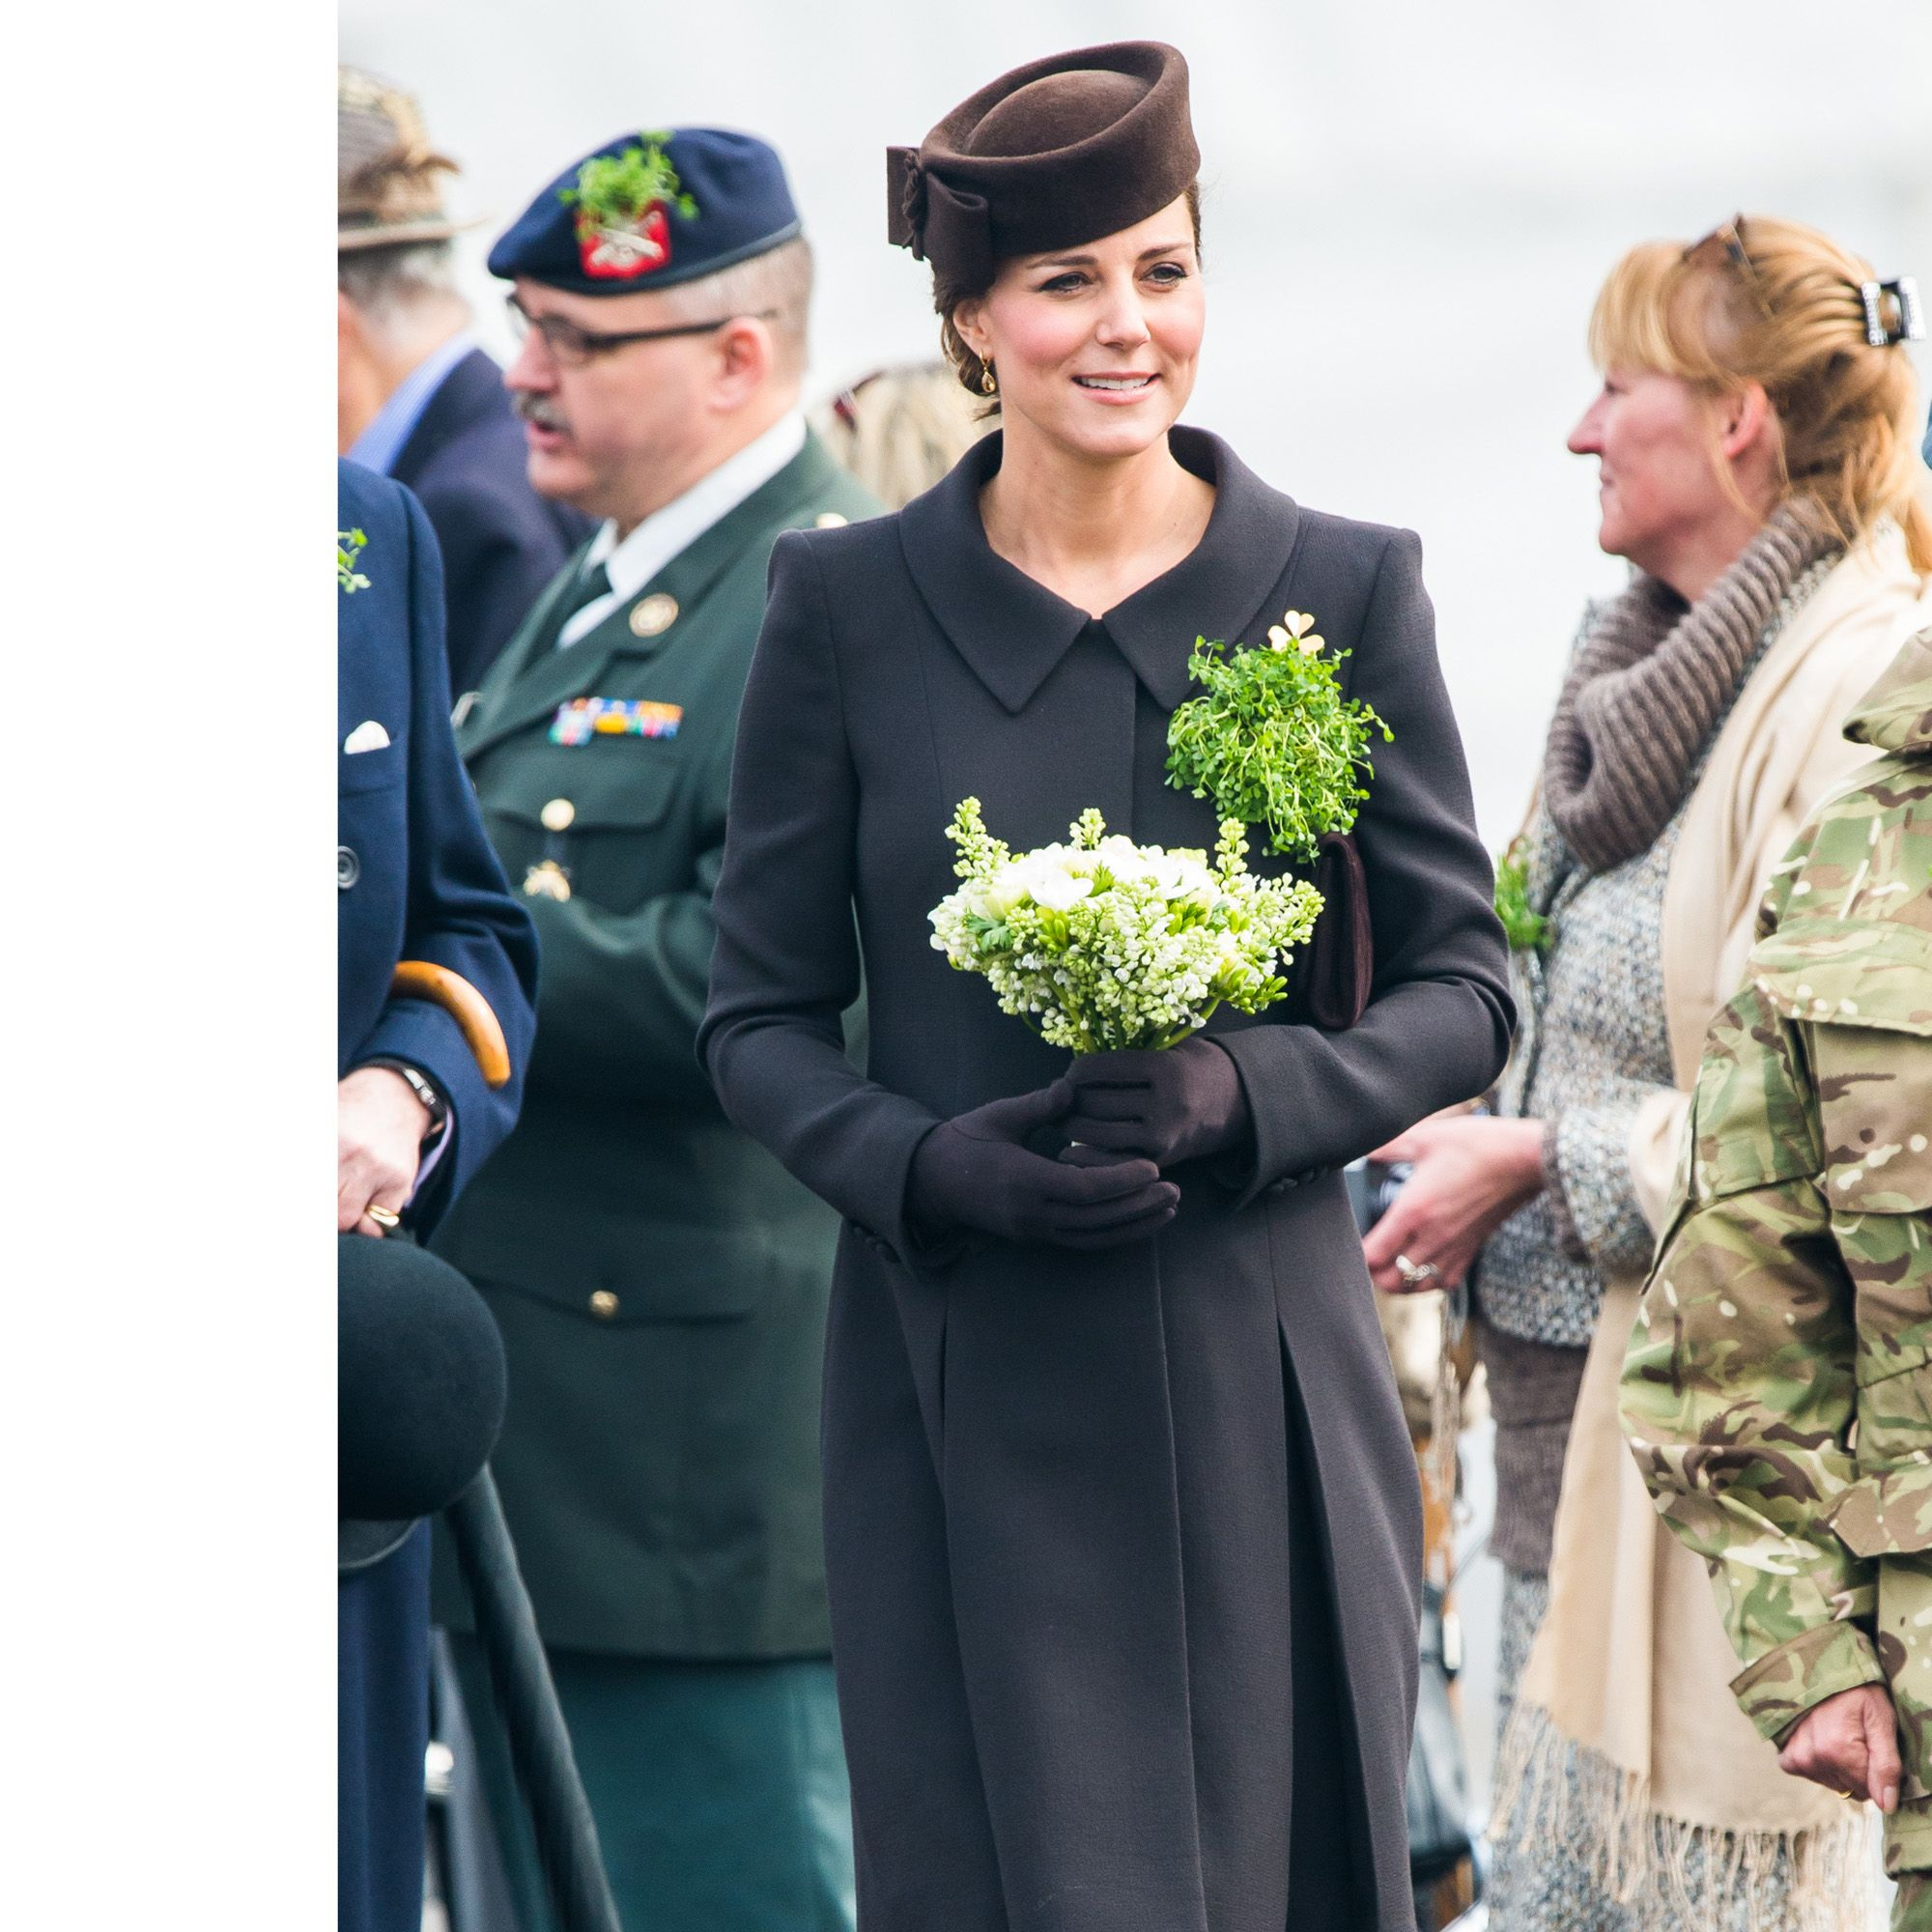 ALDERSHOT, ENGLAND - MARCH 17:  Catherine, Duchess of Cambridge attends the St Patrick's Day Parade at Mons Barracks on March 17, 2015 in Aldershot, England.  (Photo by Samir Hussein/WireImage)